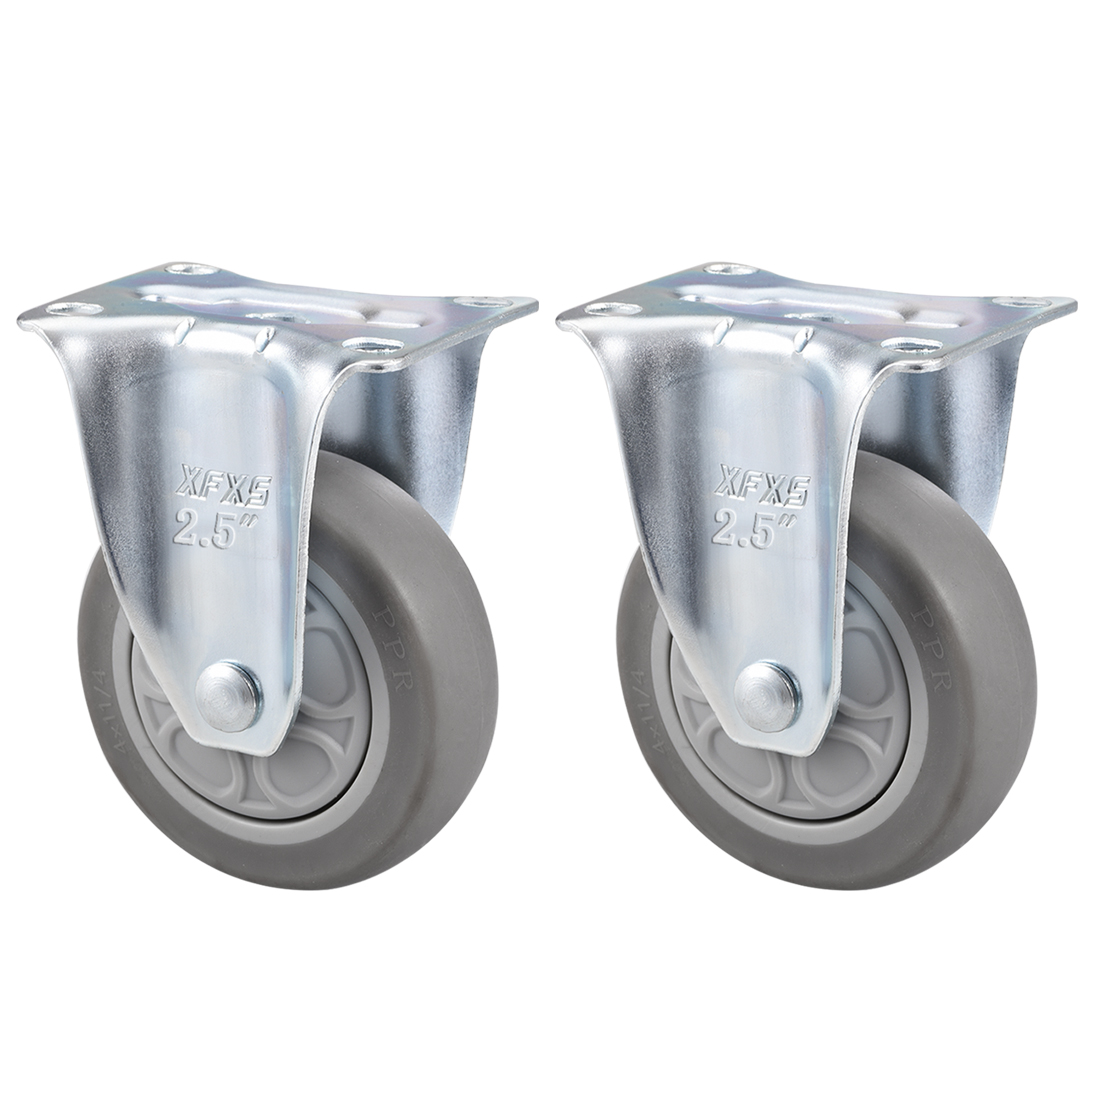 Fixed Caster Wheels 2.5inch TPR Caster Top Plate Mounted 242lb Capacity , 2pcs